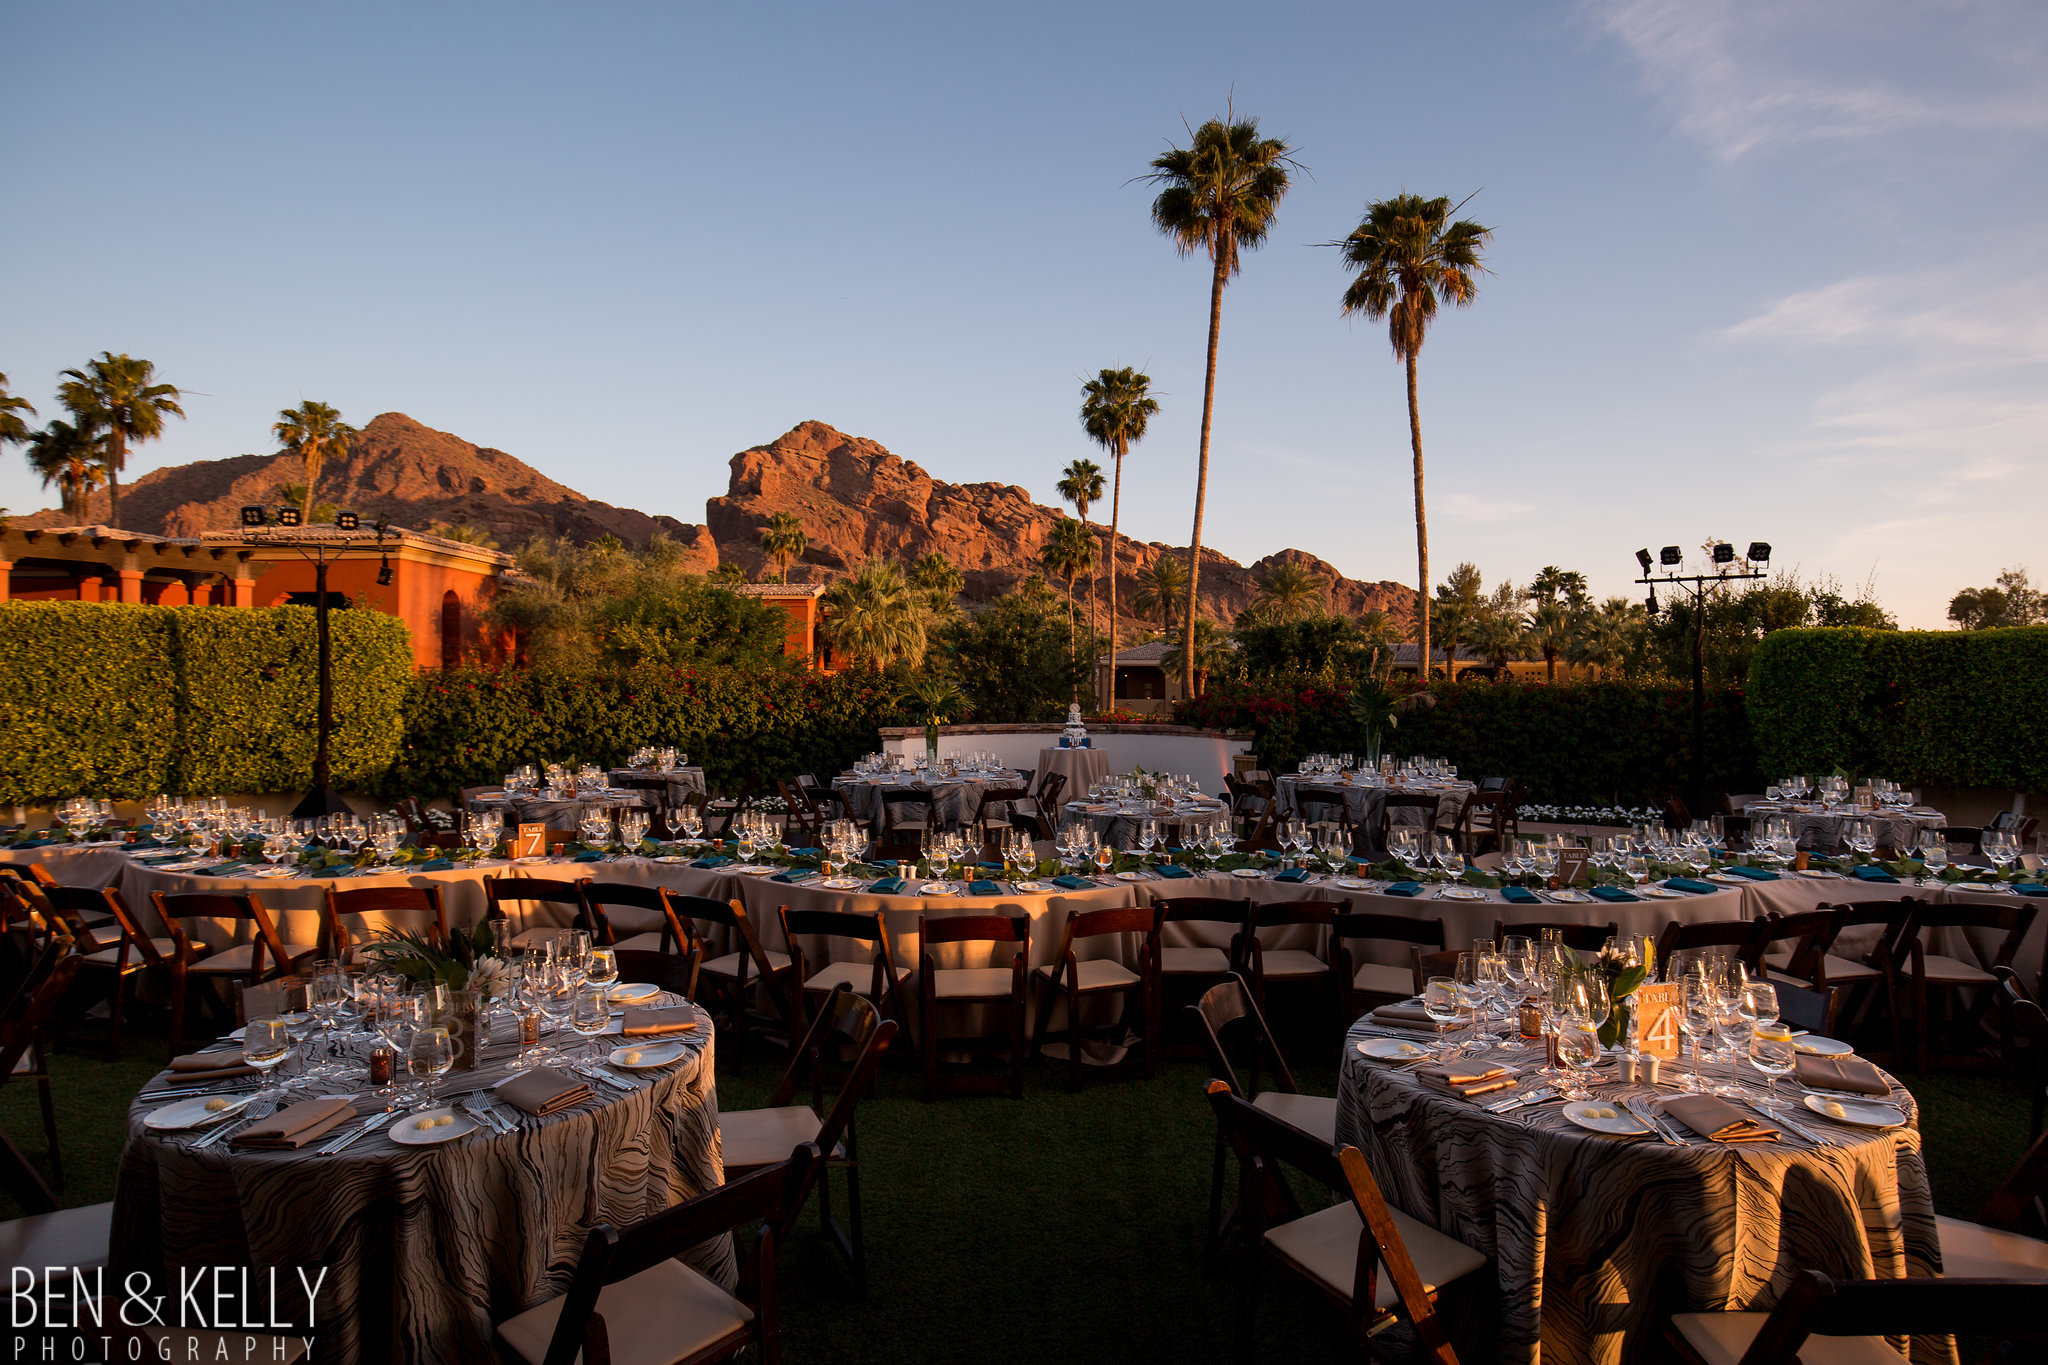 27 wedding reception table serpentine table unique wedding reception set up backyard wedding dinner camelback mountain wedding omni scottsdale montelucia wedding dinner reception sunset wedding Life Design Events photo by Ben and Kelly Photography.jpg